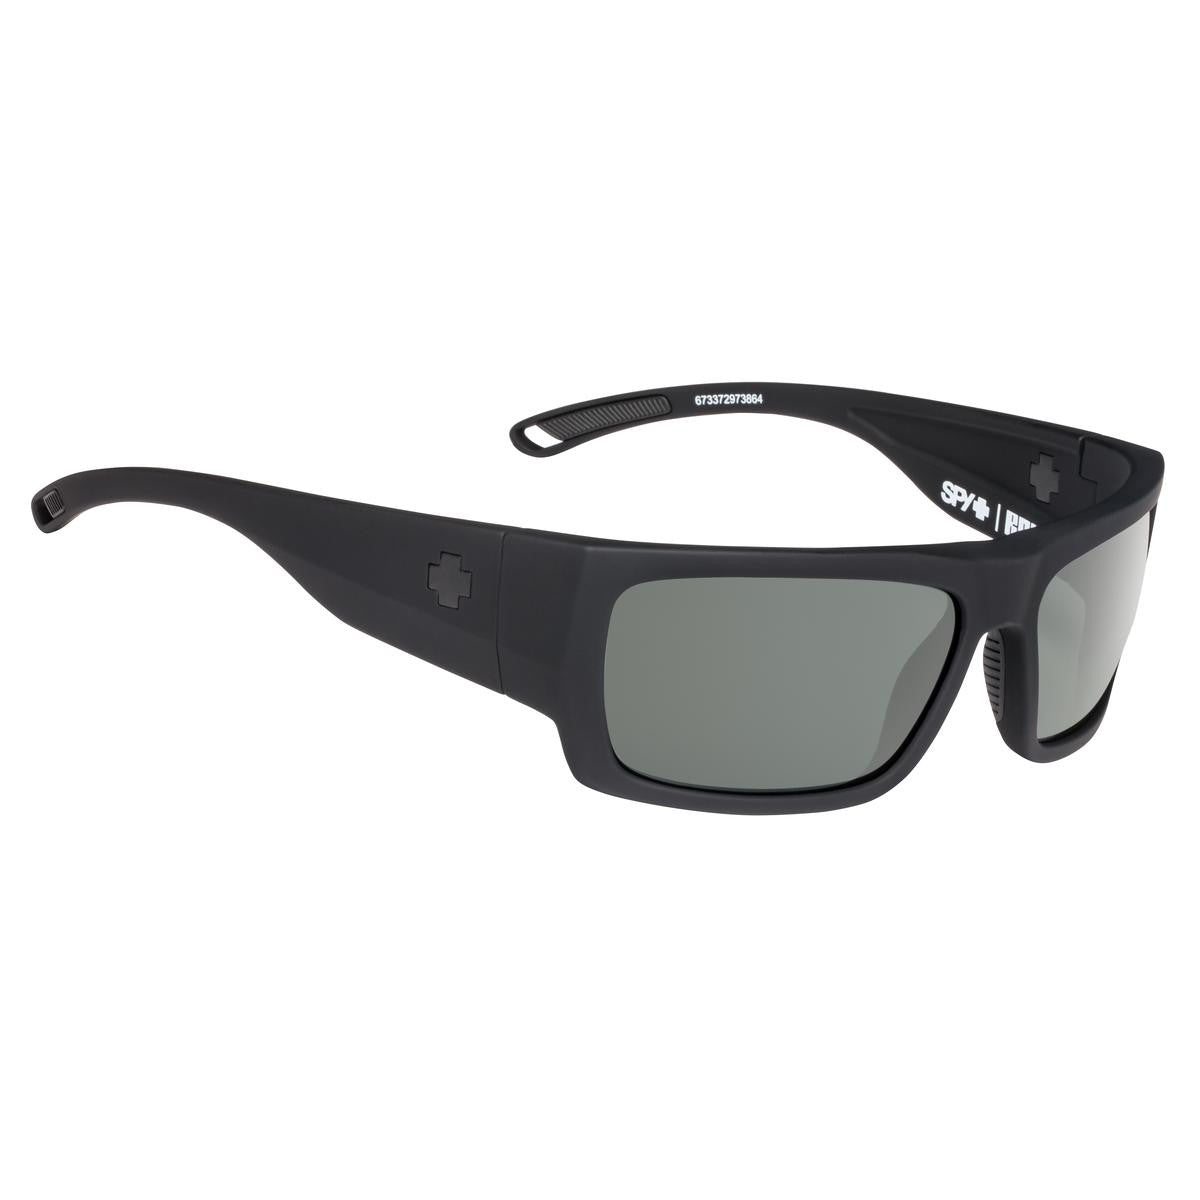 Spy Rover Men's Sunglasses